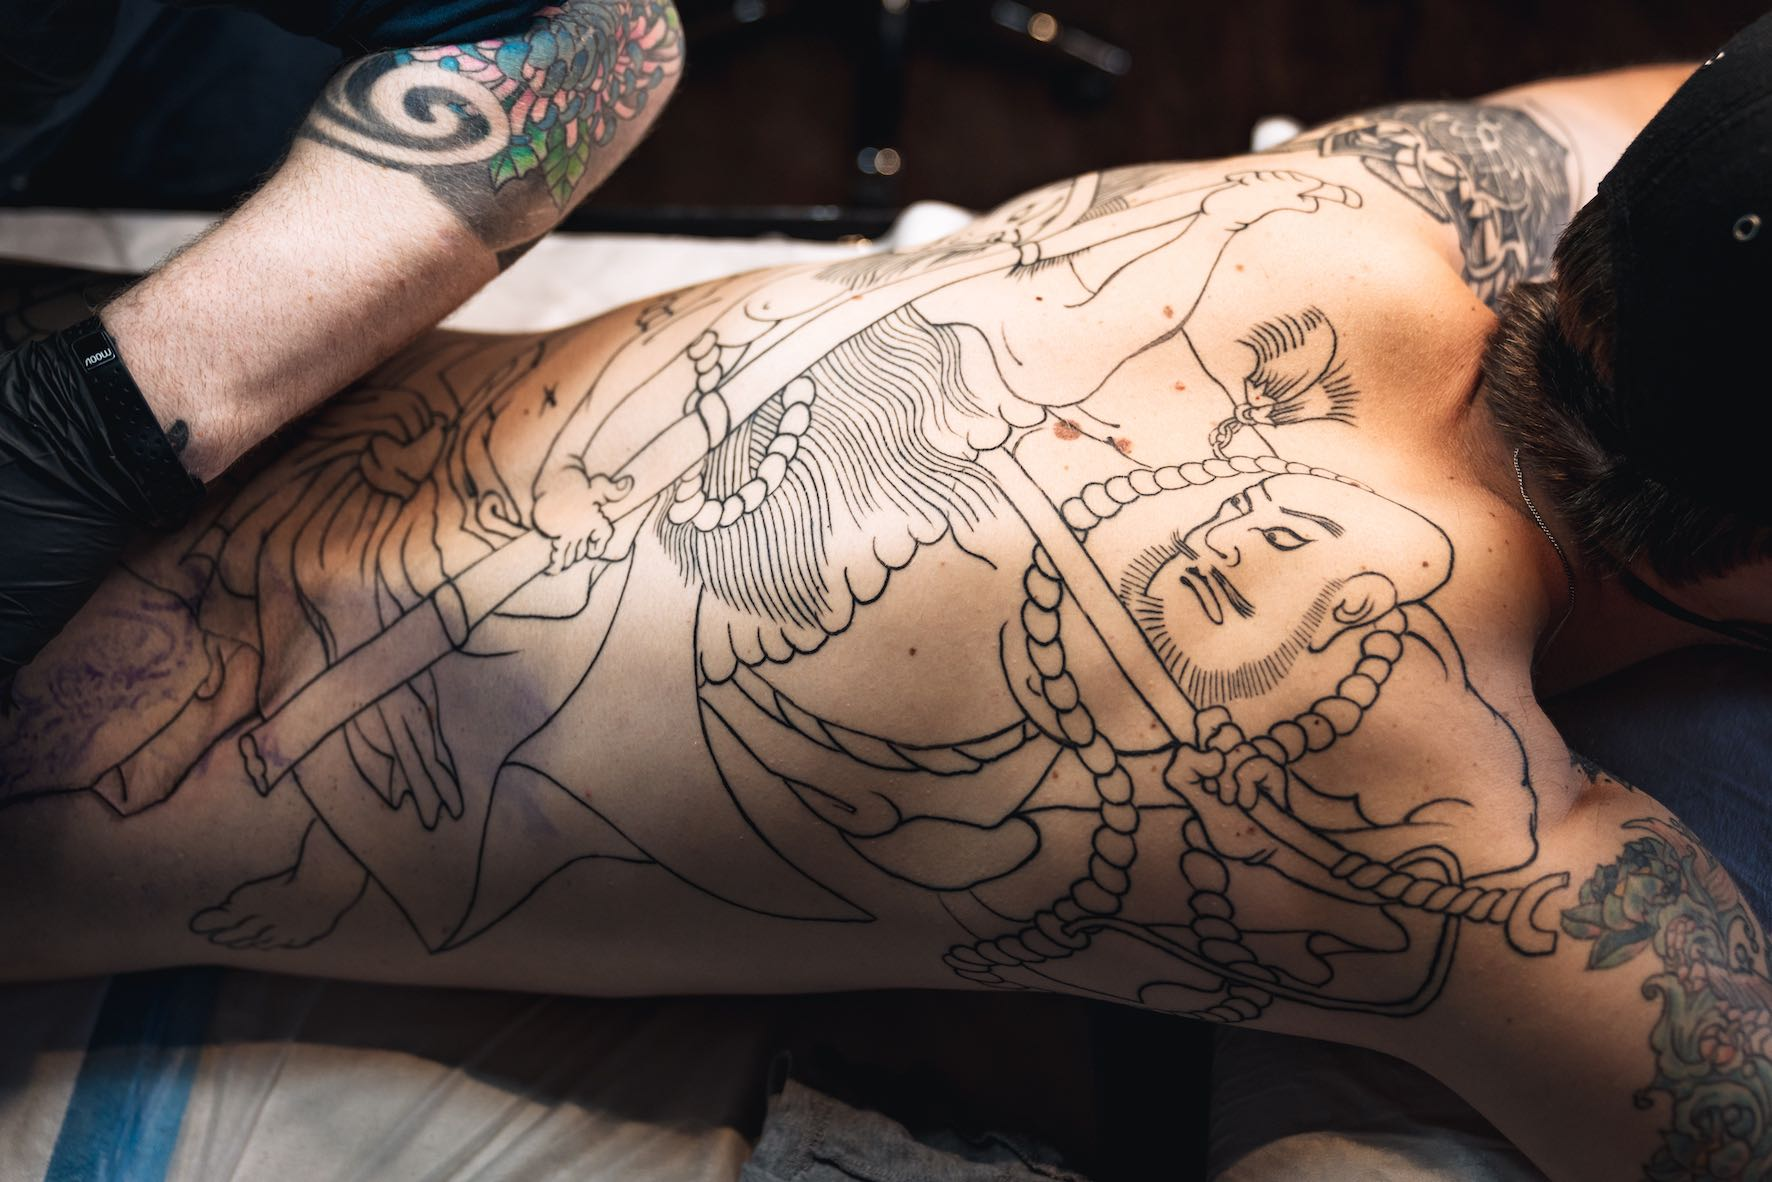 Traditional Japanese tattoo work by Daniel Feinberg